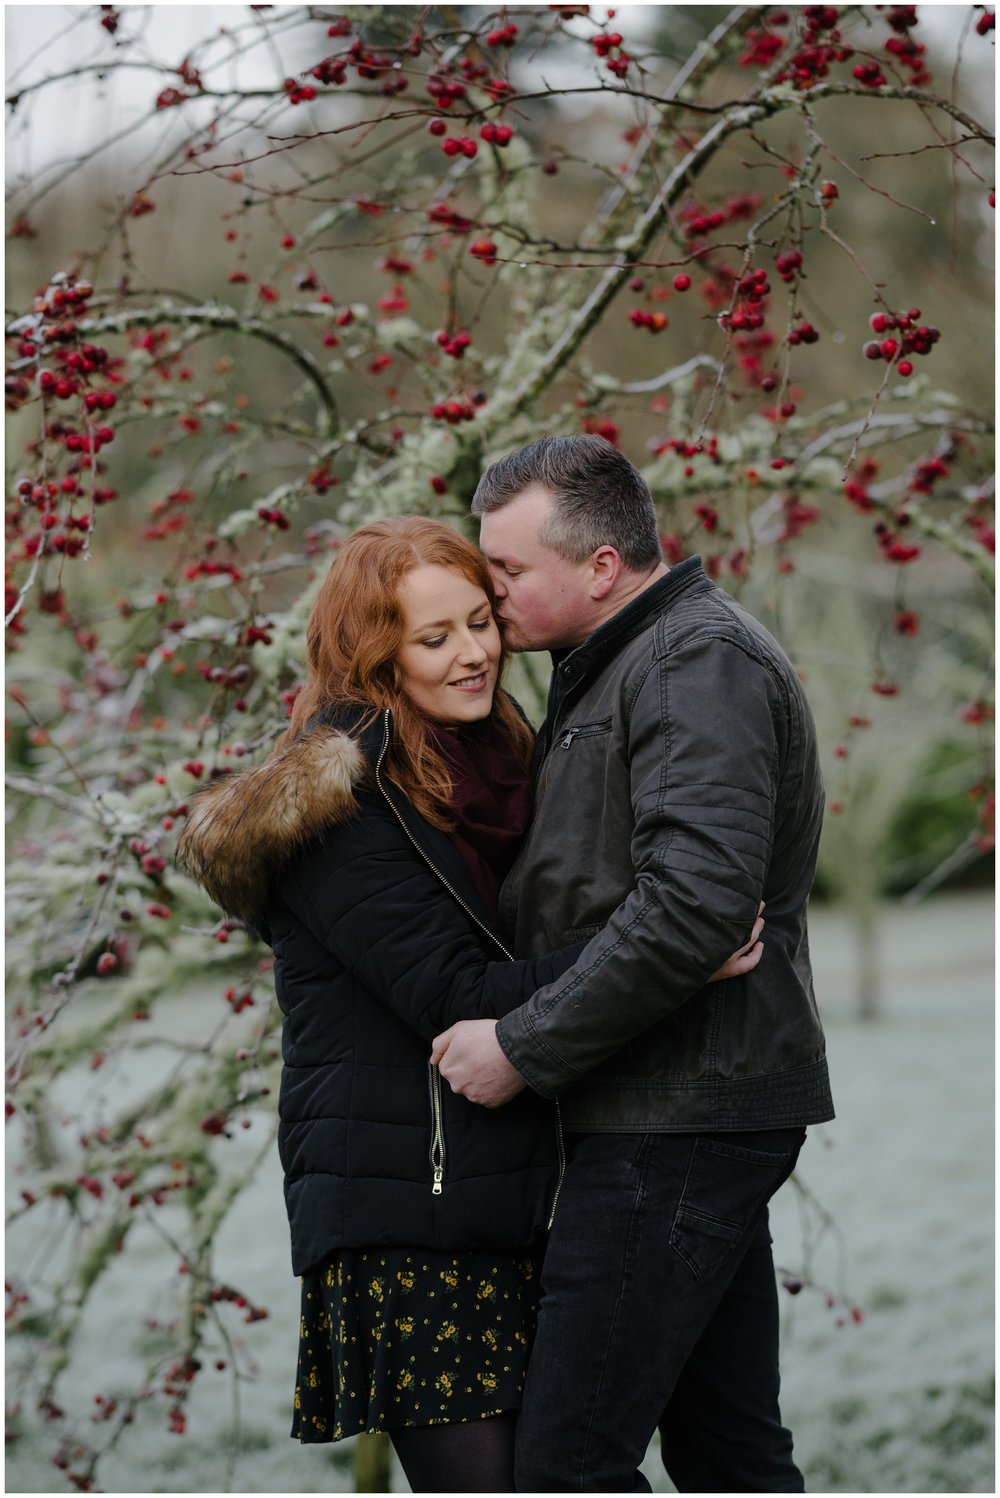 hannah_gary_fermanagh_pre_wedding_jude_browne_photography_0013.jpg